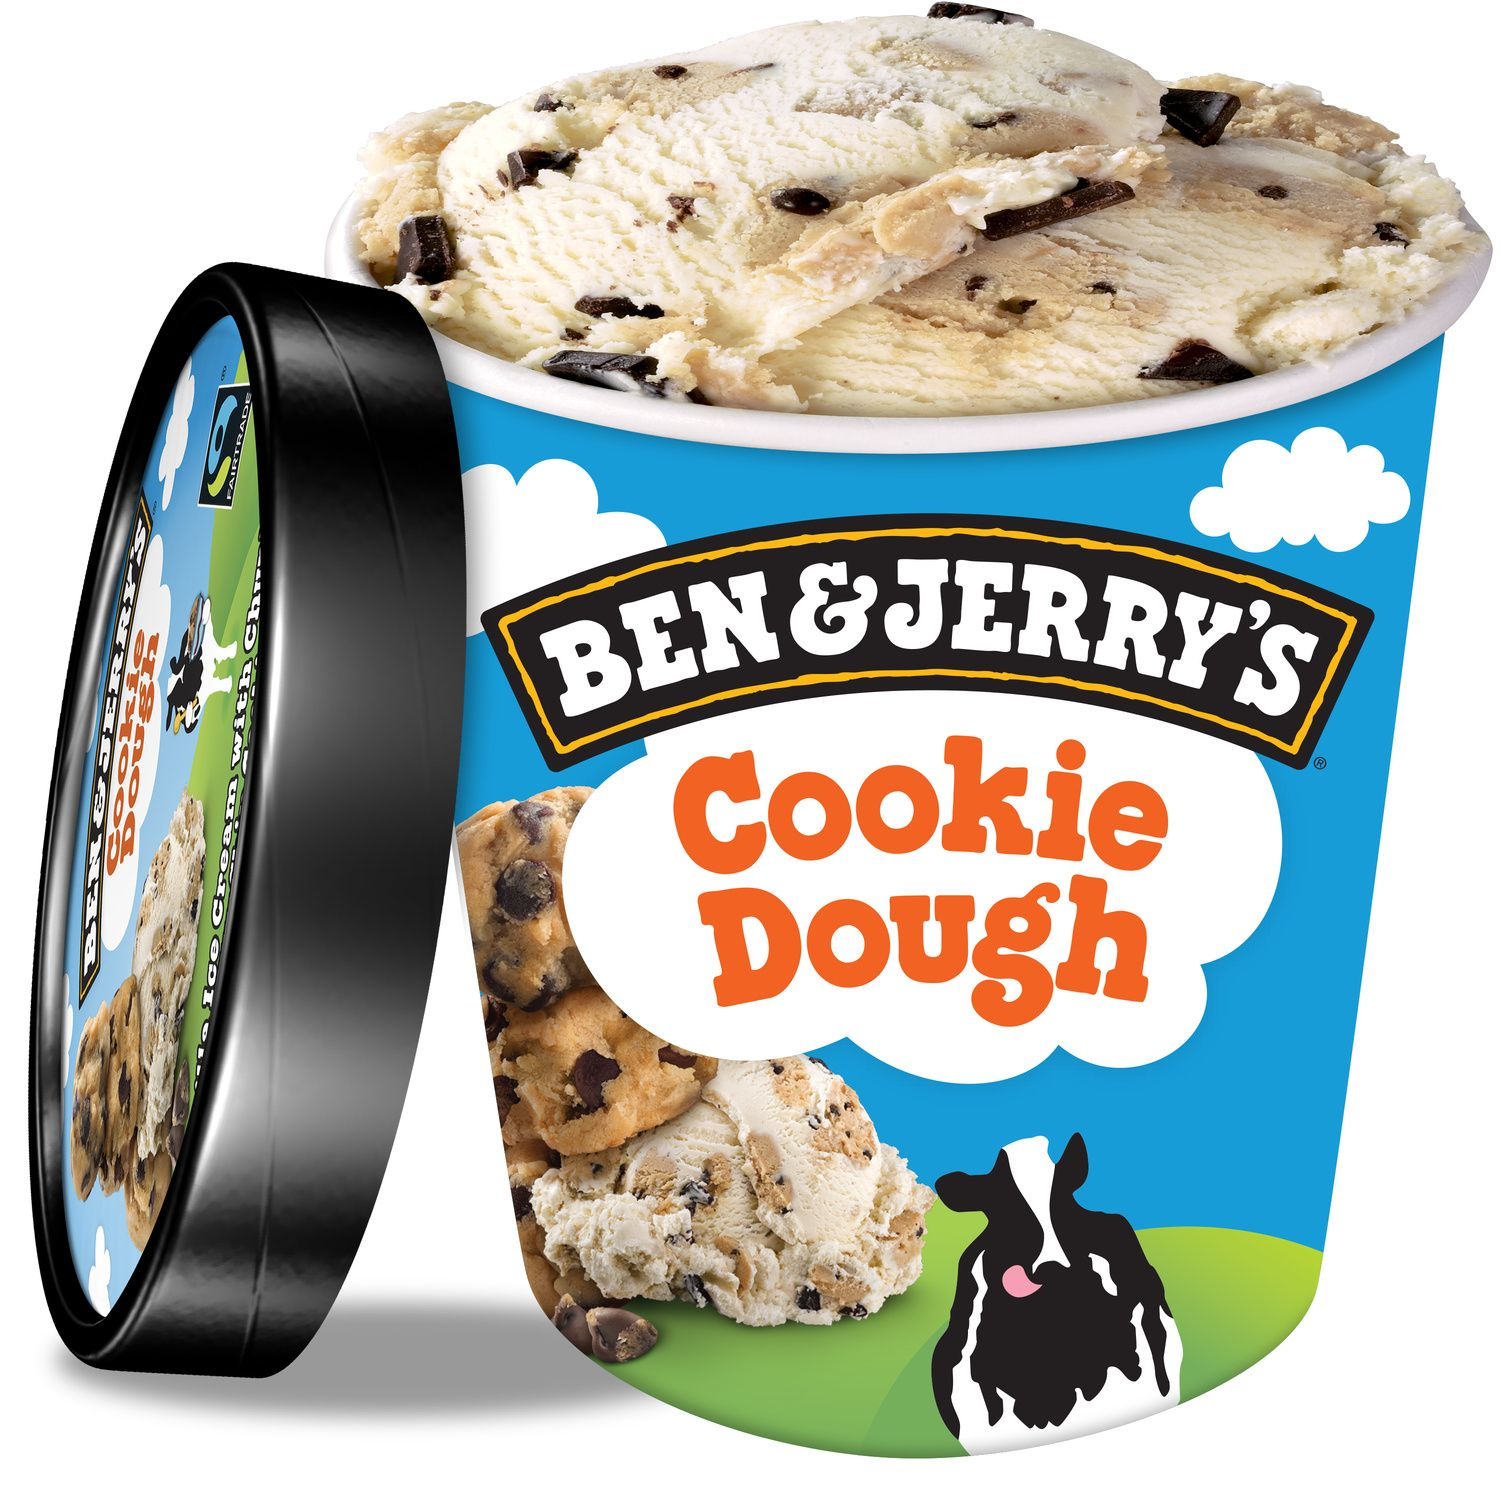 Glace Cookie Dough Vanille Ben Jerry S Le Pot De 425g A Prix